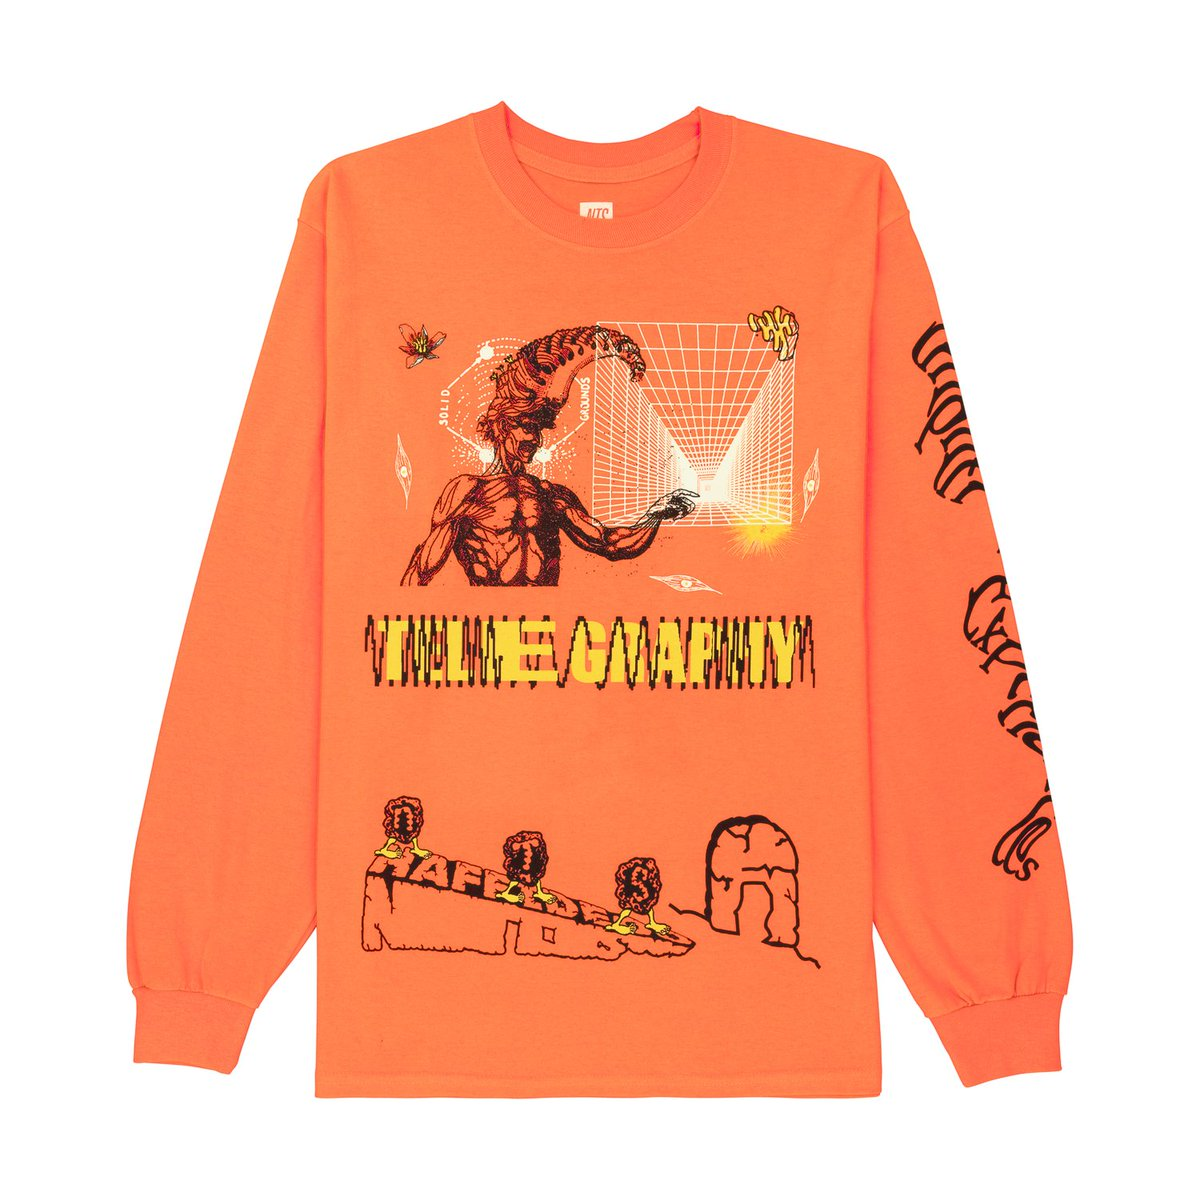 Orange L S Soup Doodle Tee Is Back In Stock Thanks To Por Demand Get Yours Http Bit Ly 2rkdqpl Pic Twitter Xh1xfdq3tp